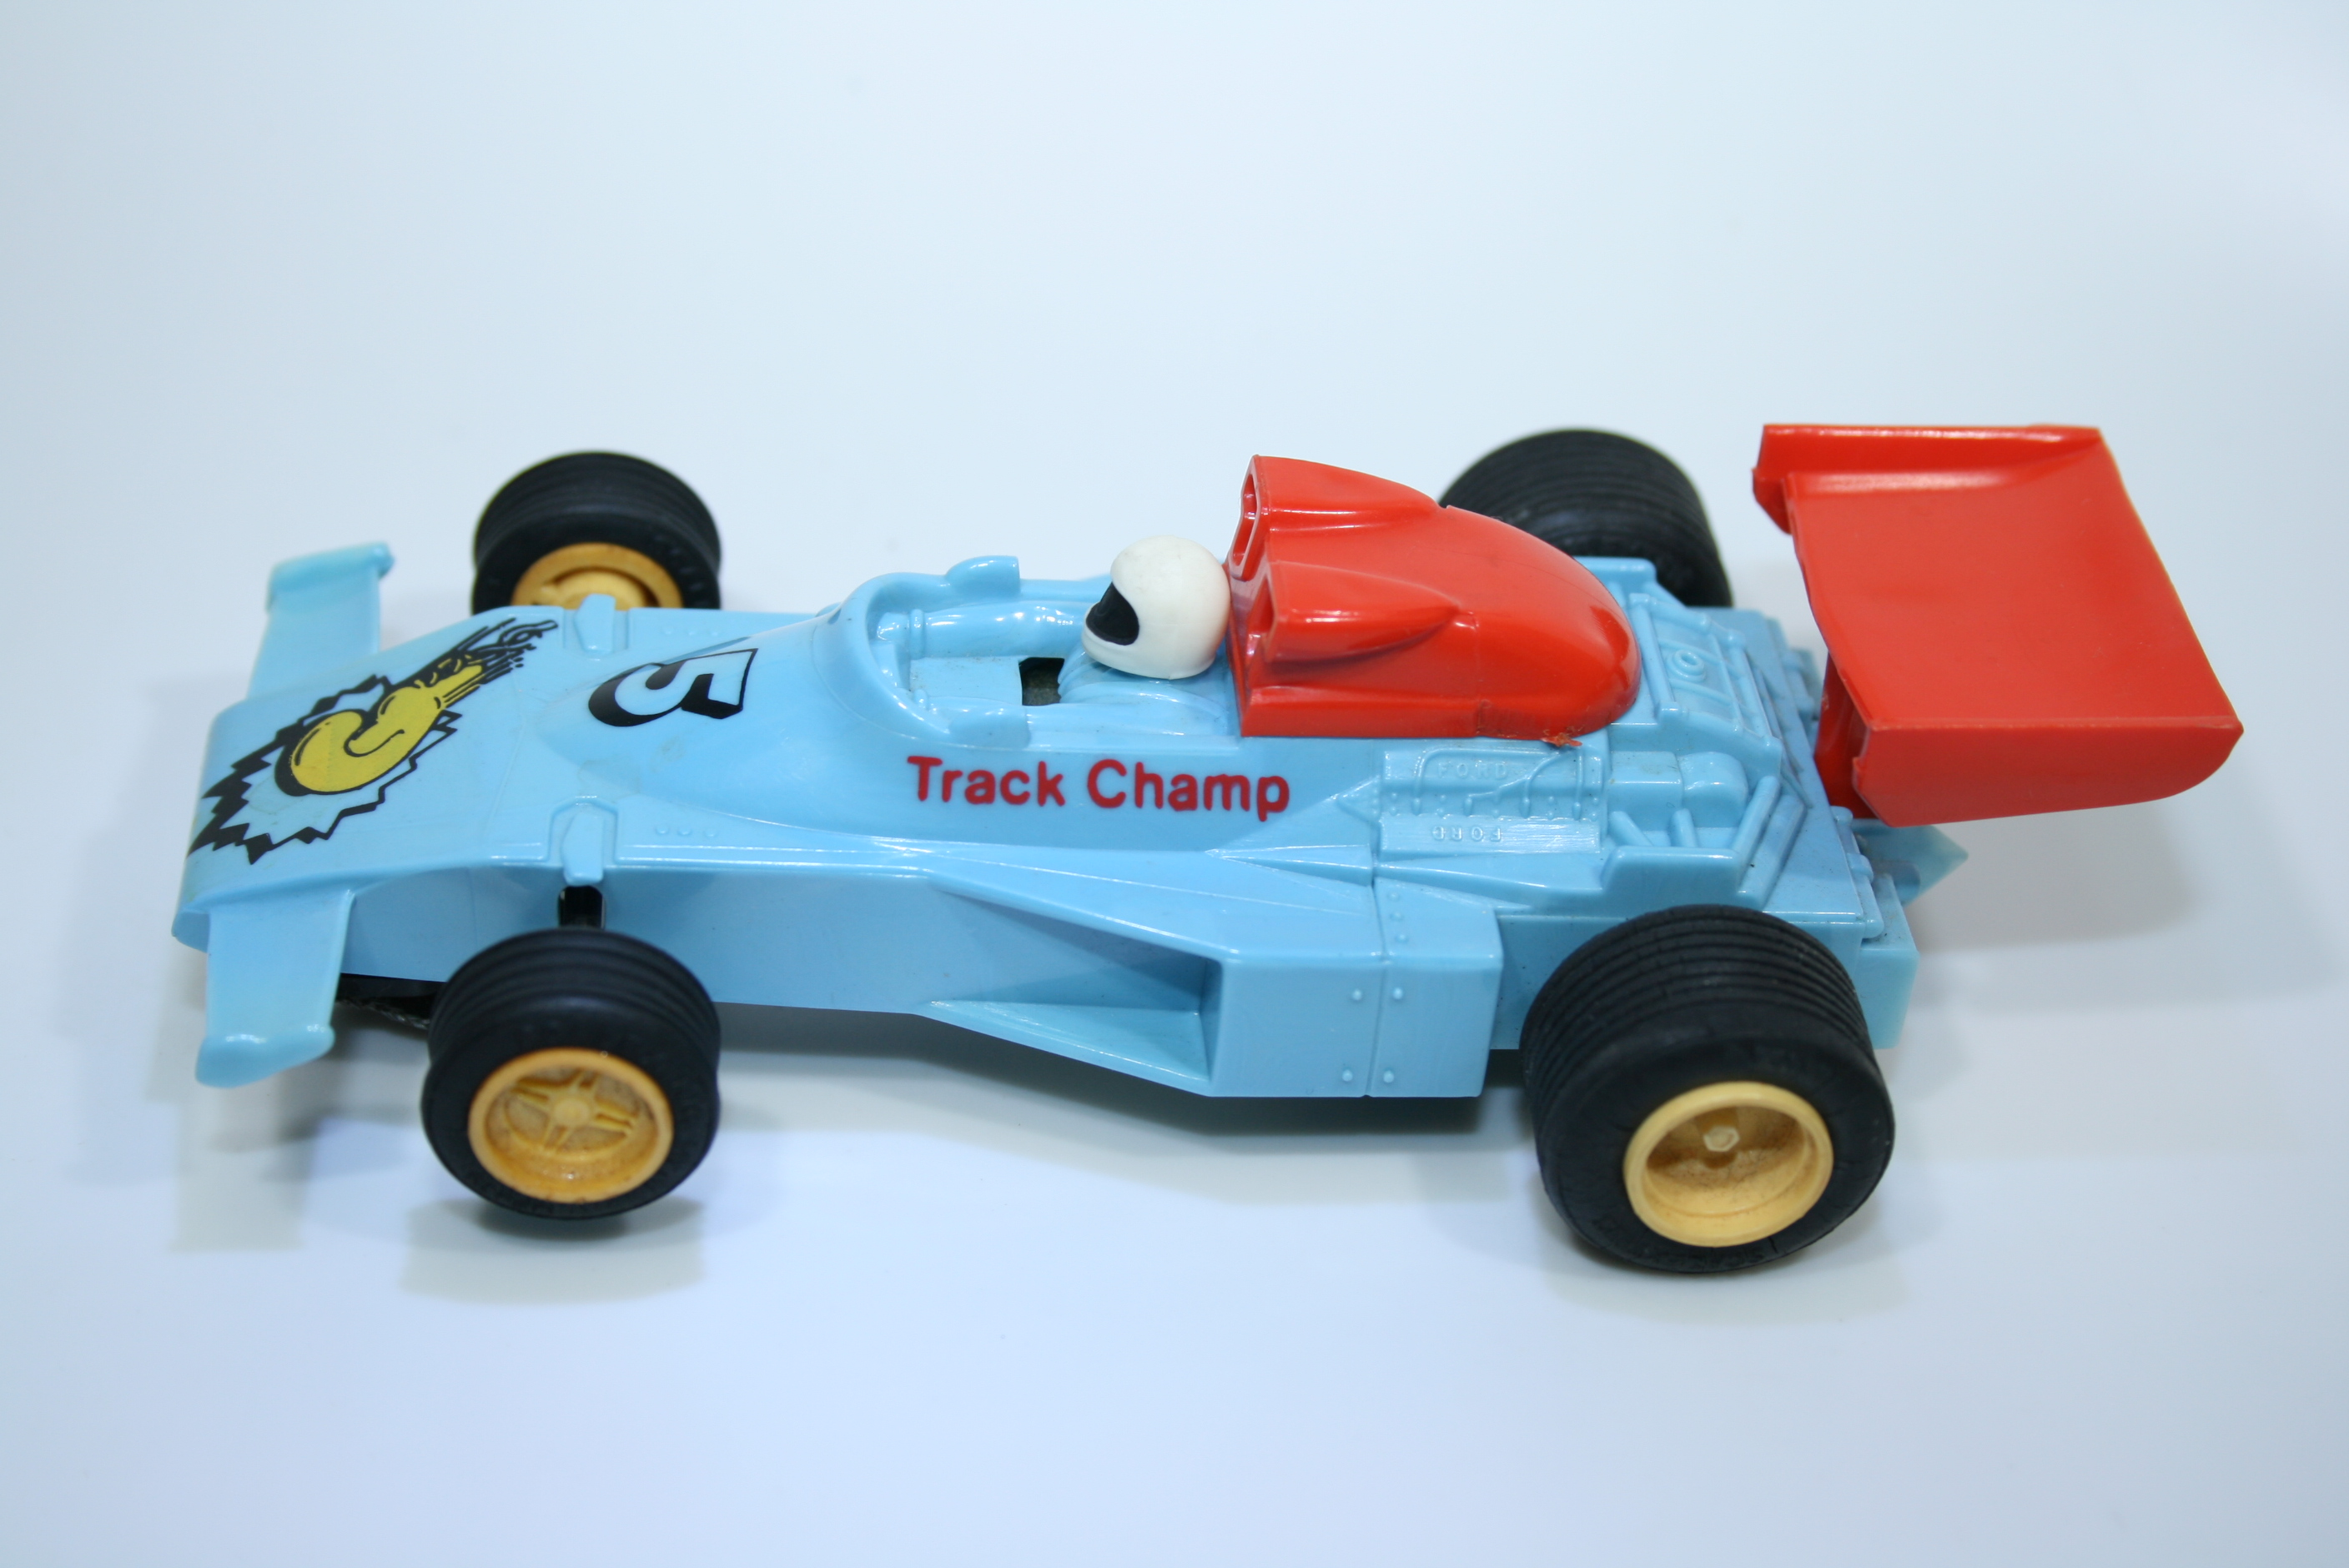 1097 Mclaren M23 1976 Team Car Scalextric C359 Track Champ 1981